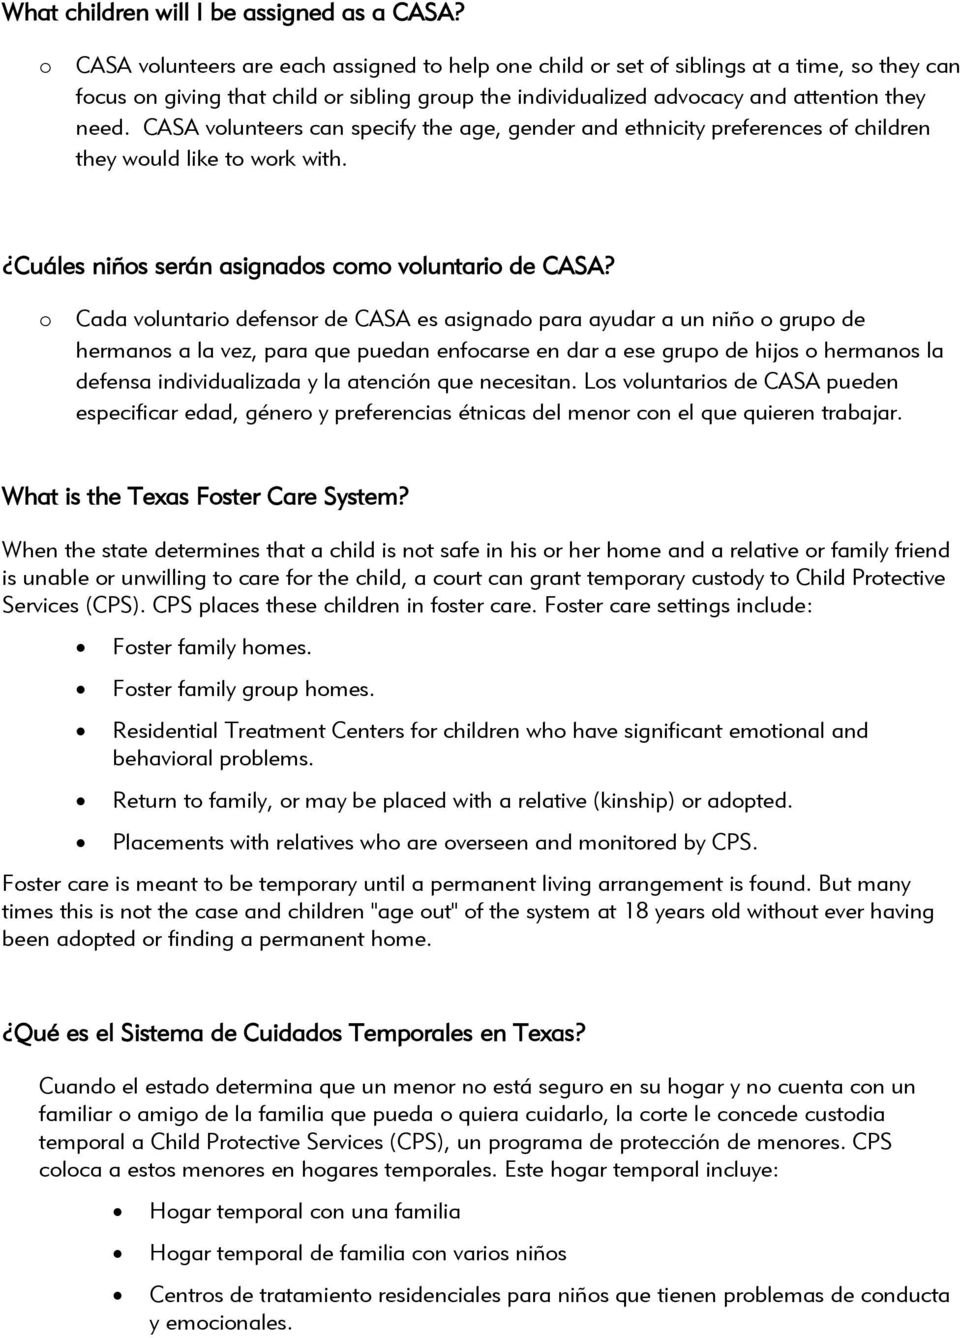 CASA vlunteers can specify the age, gender and ethnicity preferences f children they wuld like t wrk with. Cuáles niñs serán asignads cm vluntari de CASA?